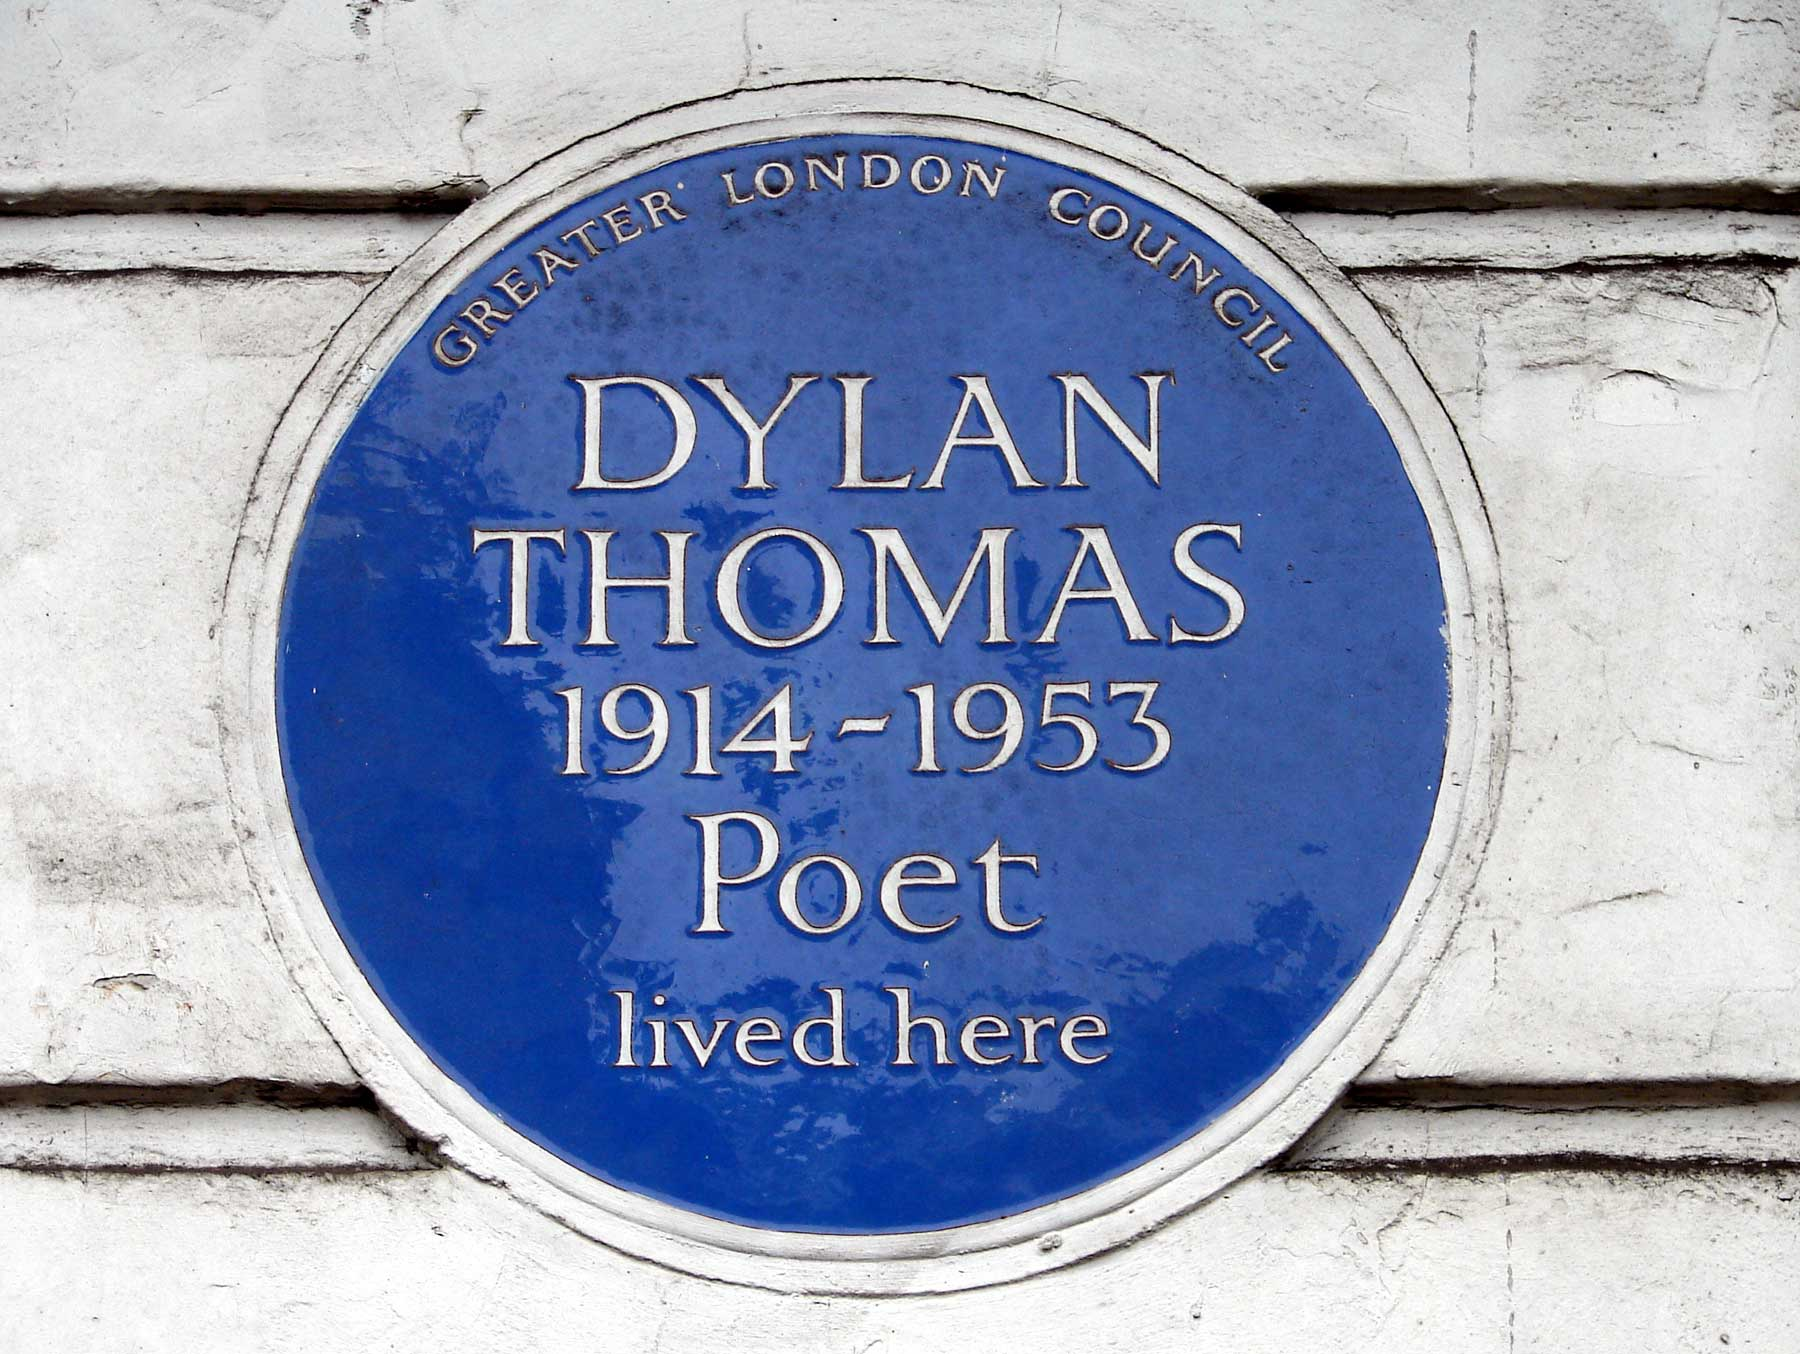 Dylan Thomas lived here plaque